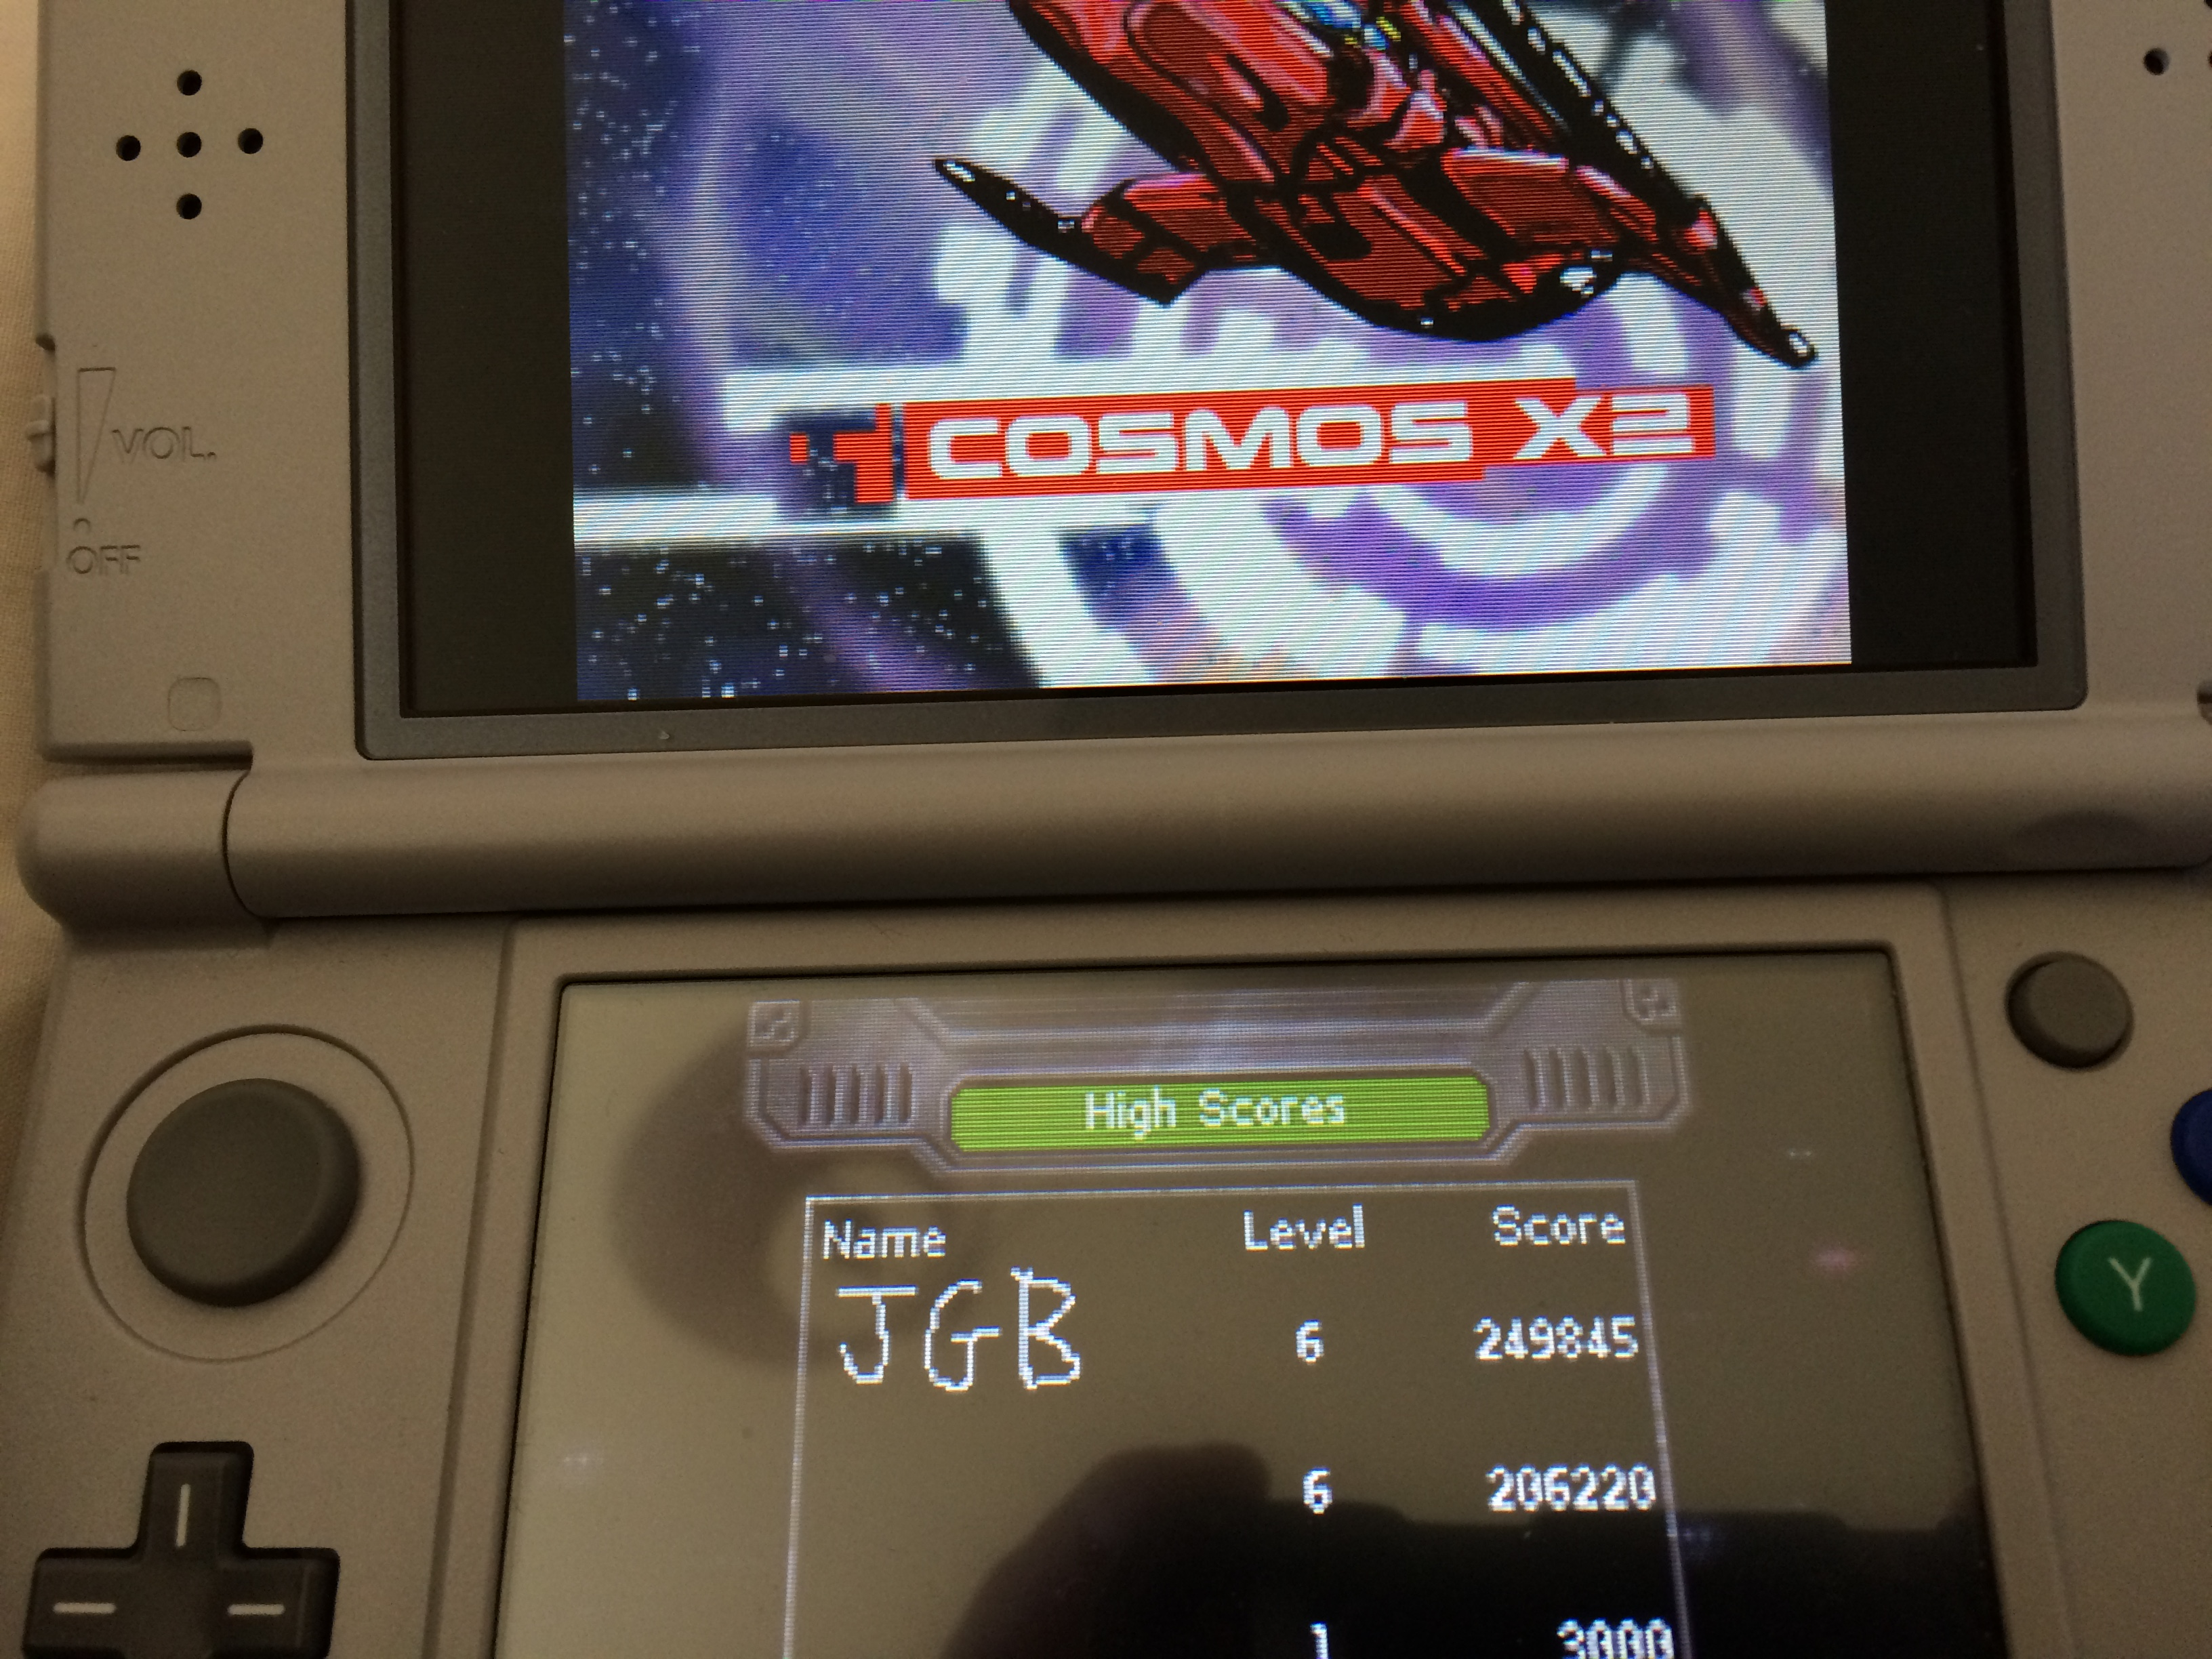 Cosmos X2 [Normal] 249,845 points